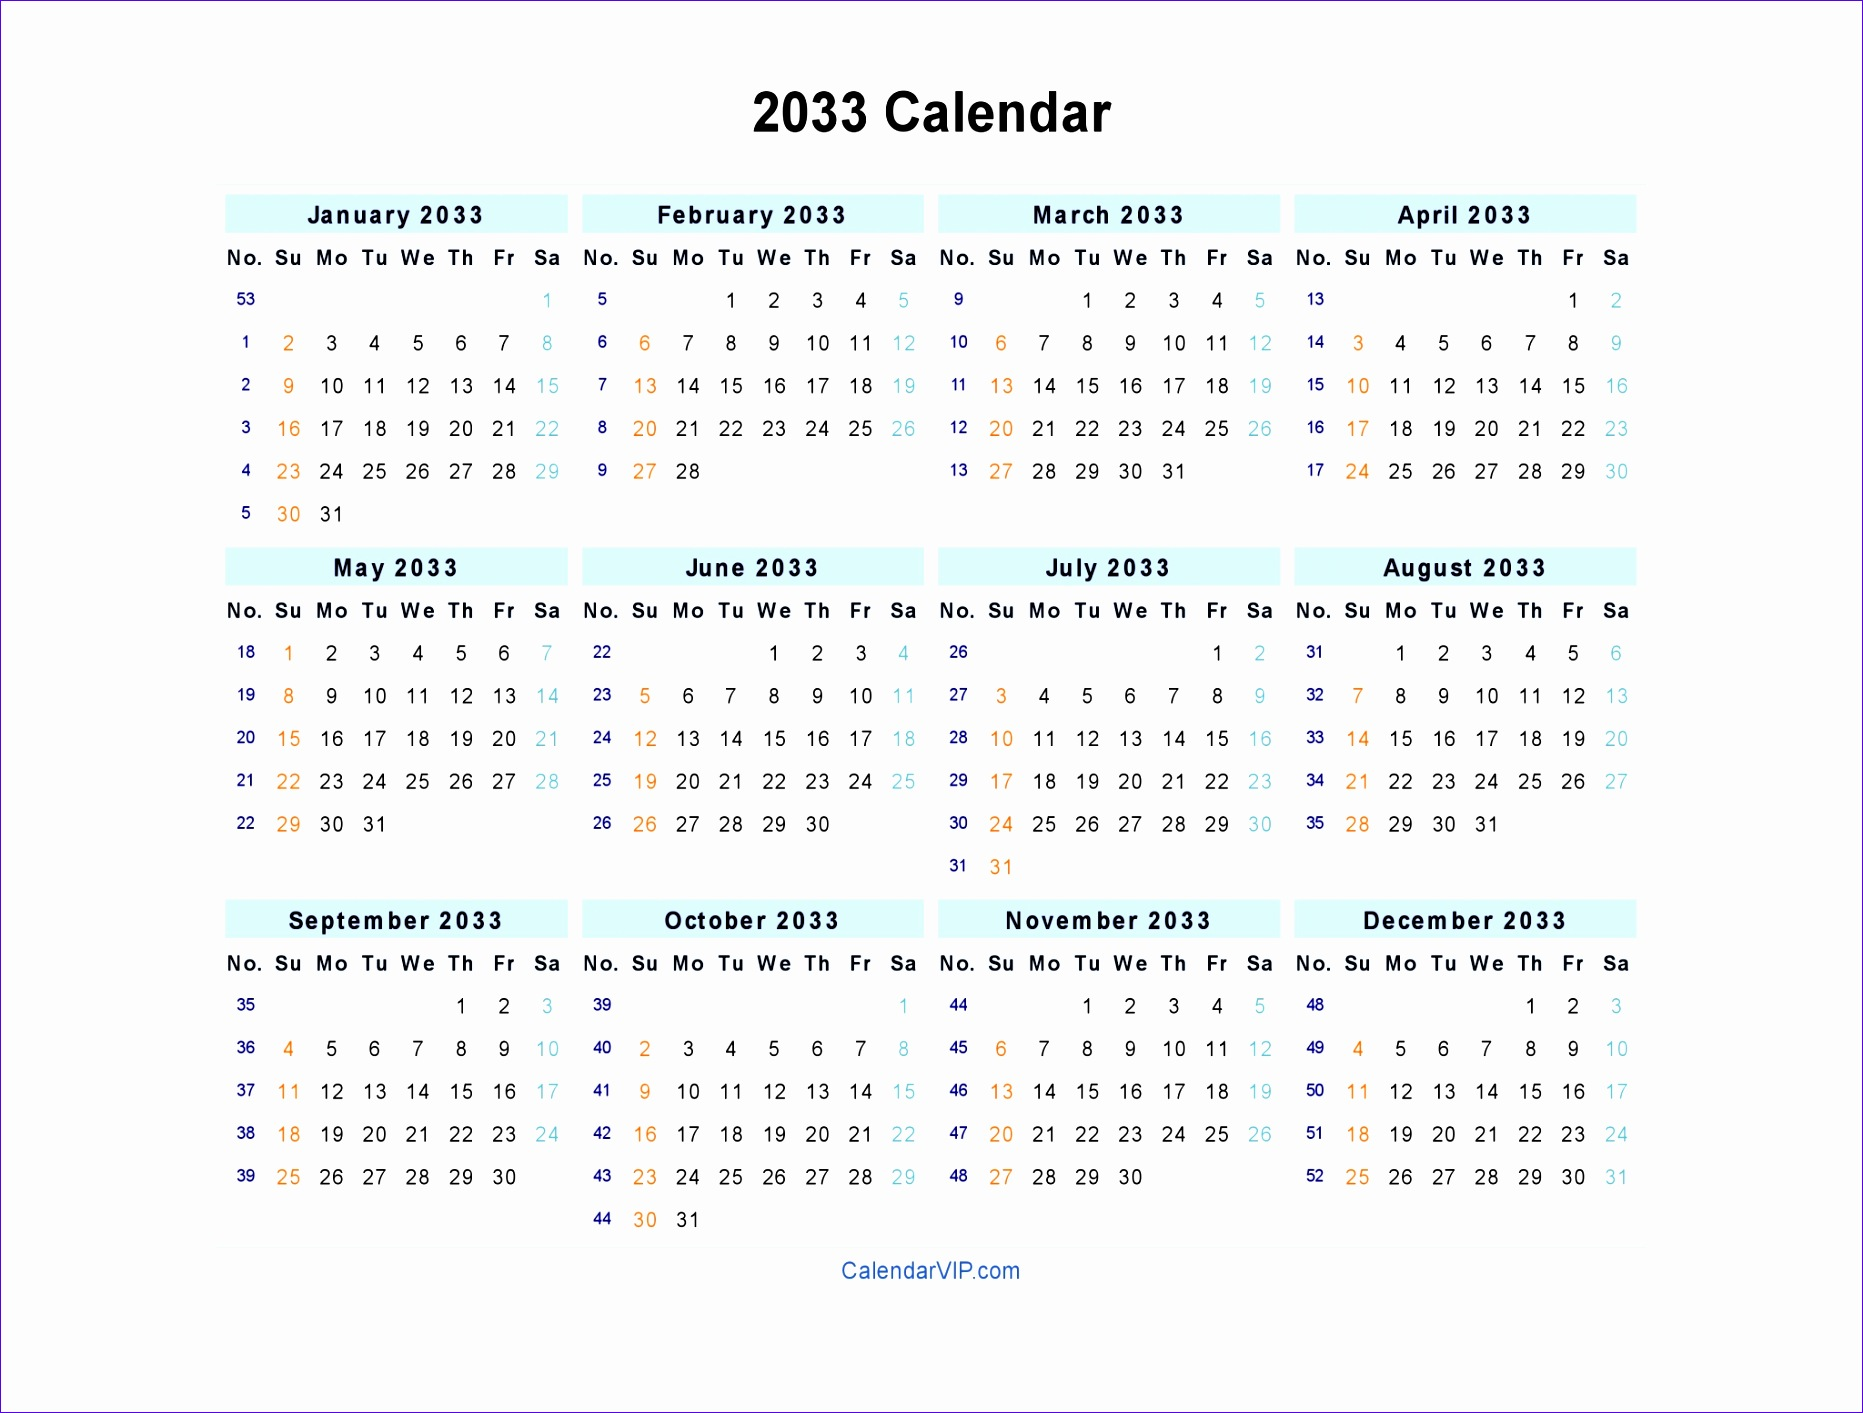 Excel File Template Ddepo Lovely 2033 Calendar Blank Printable Calendar Template In Pdf 20481536